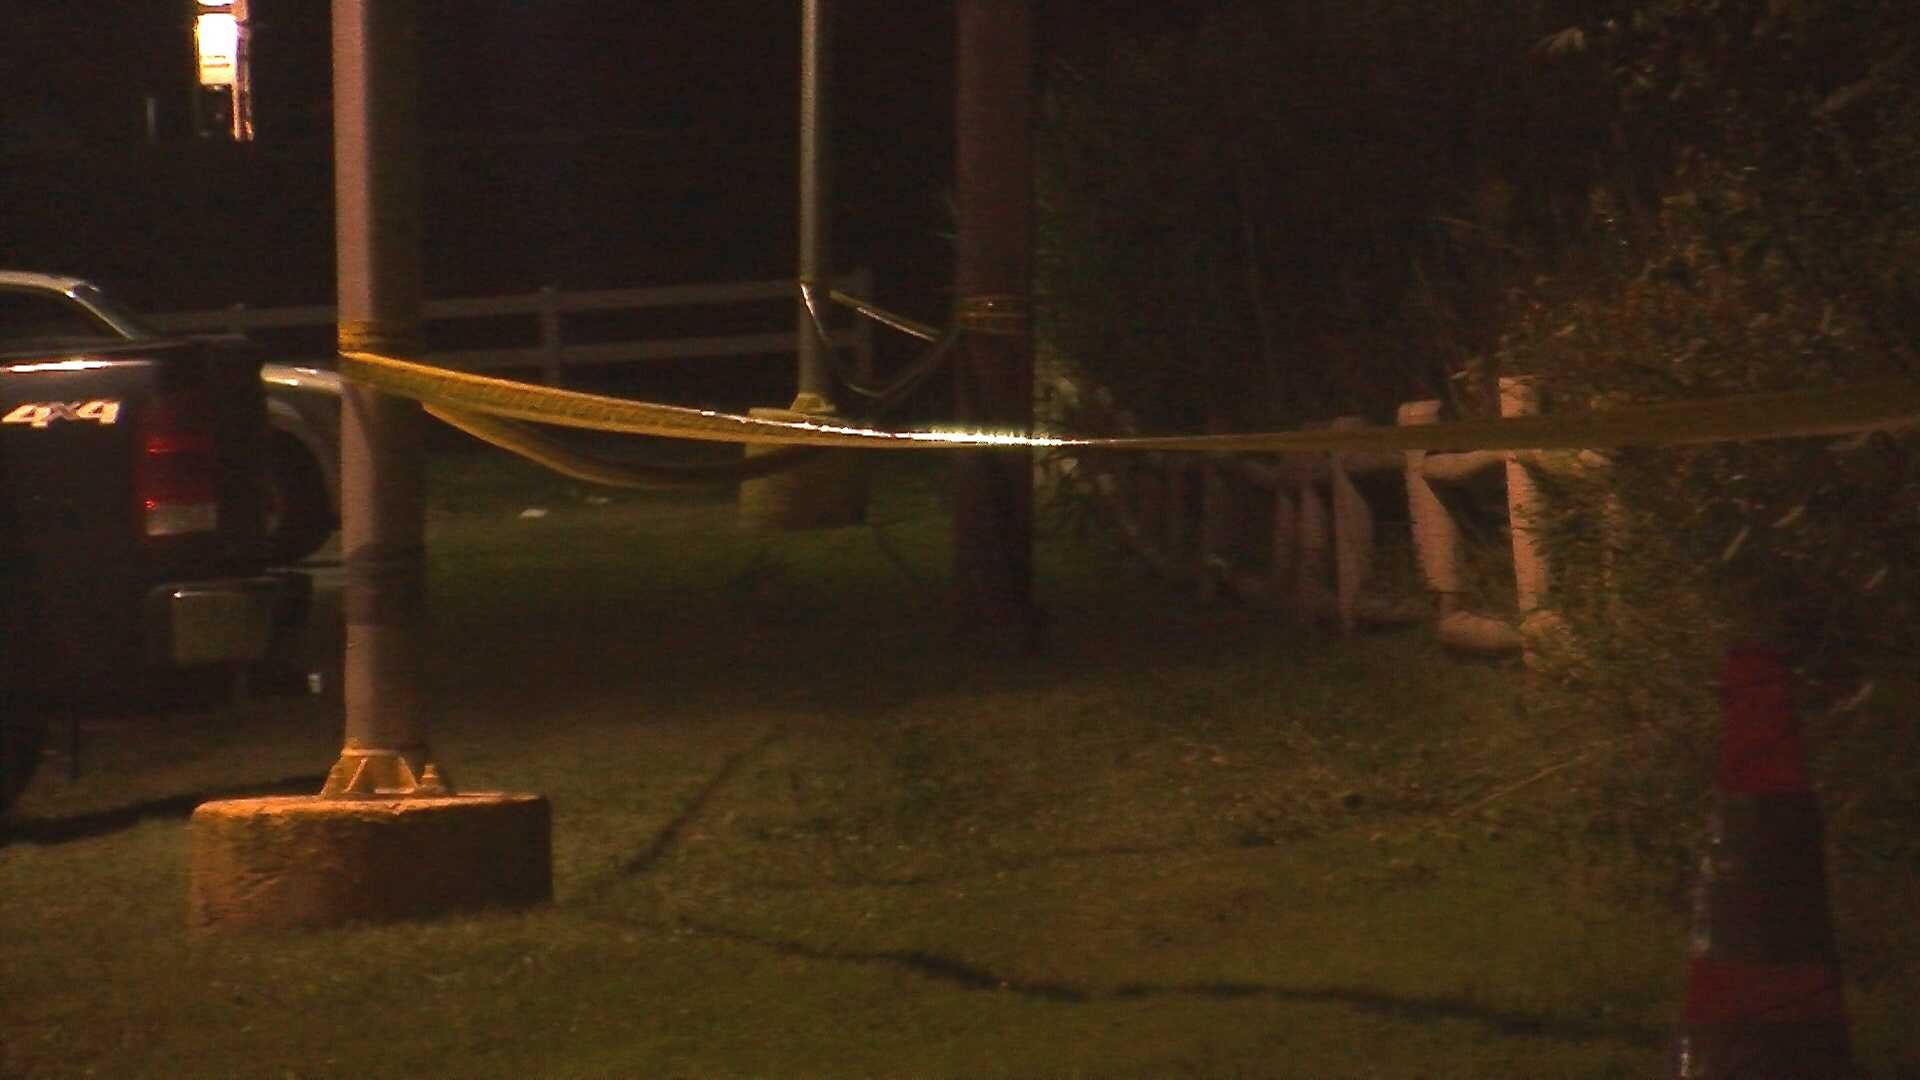 09-01-13 Woman discovered unconscious in woods - img